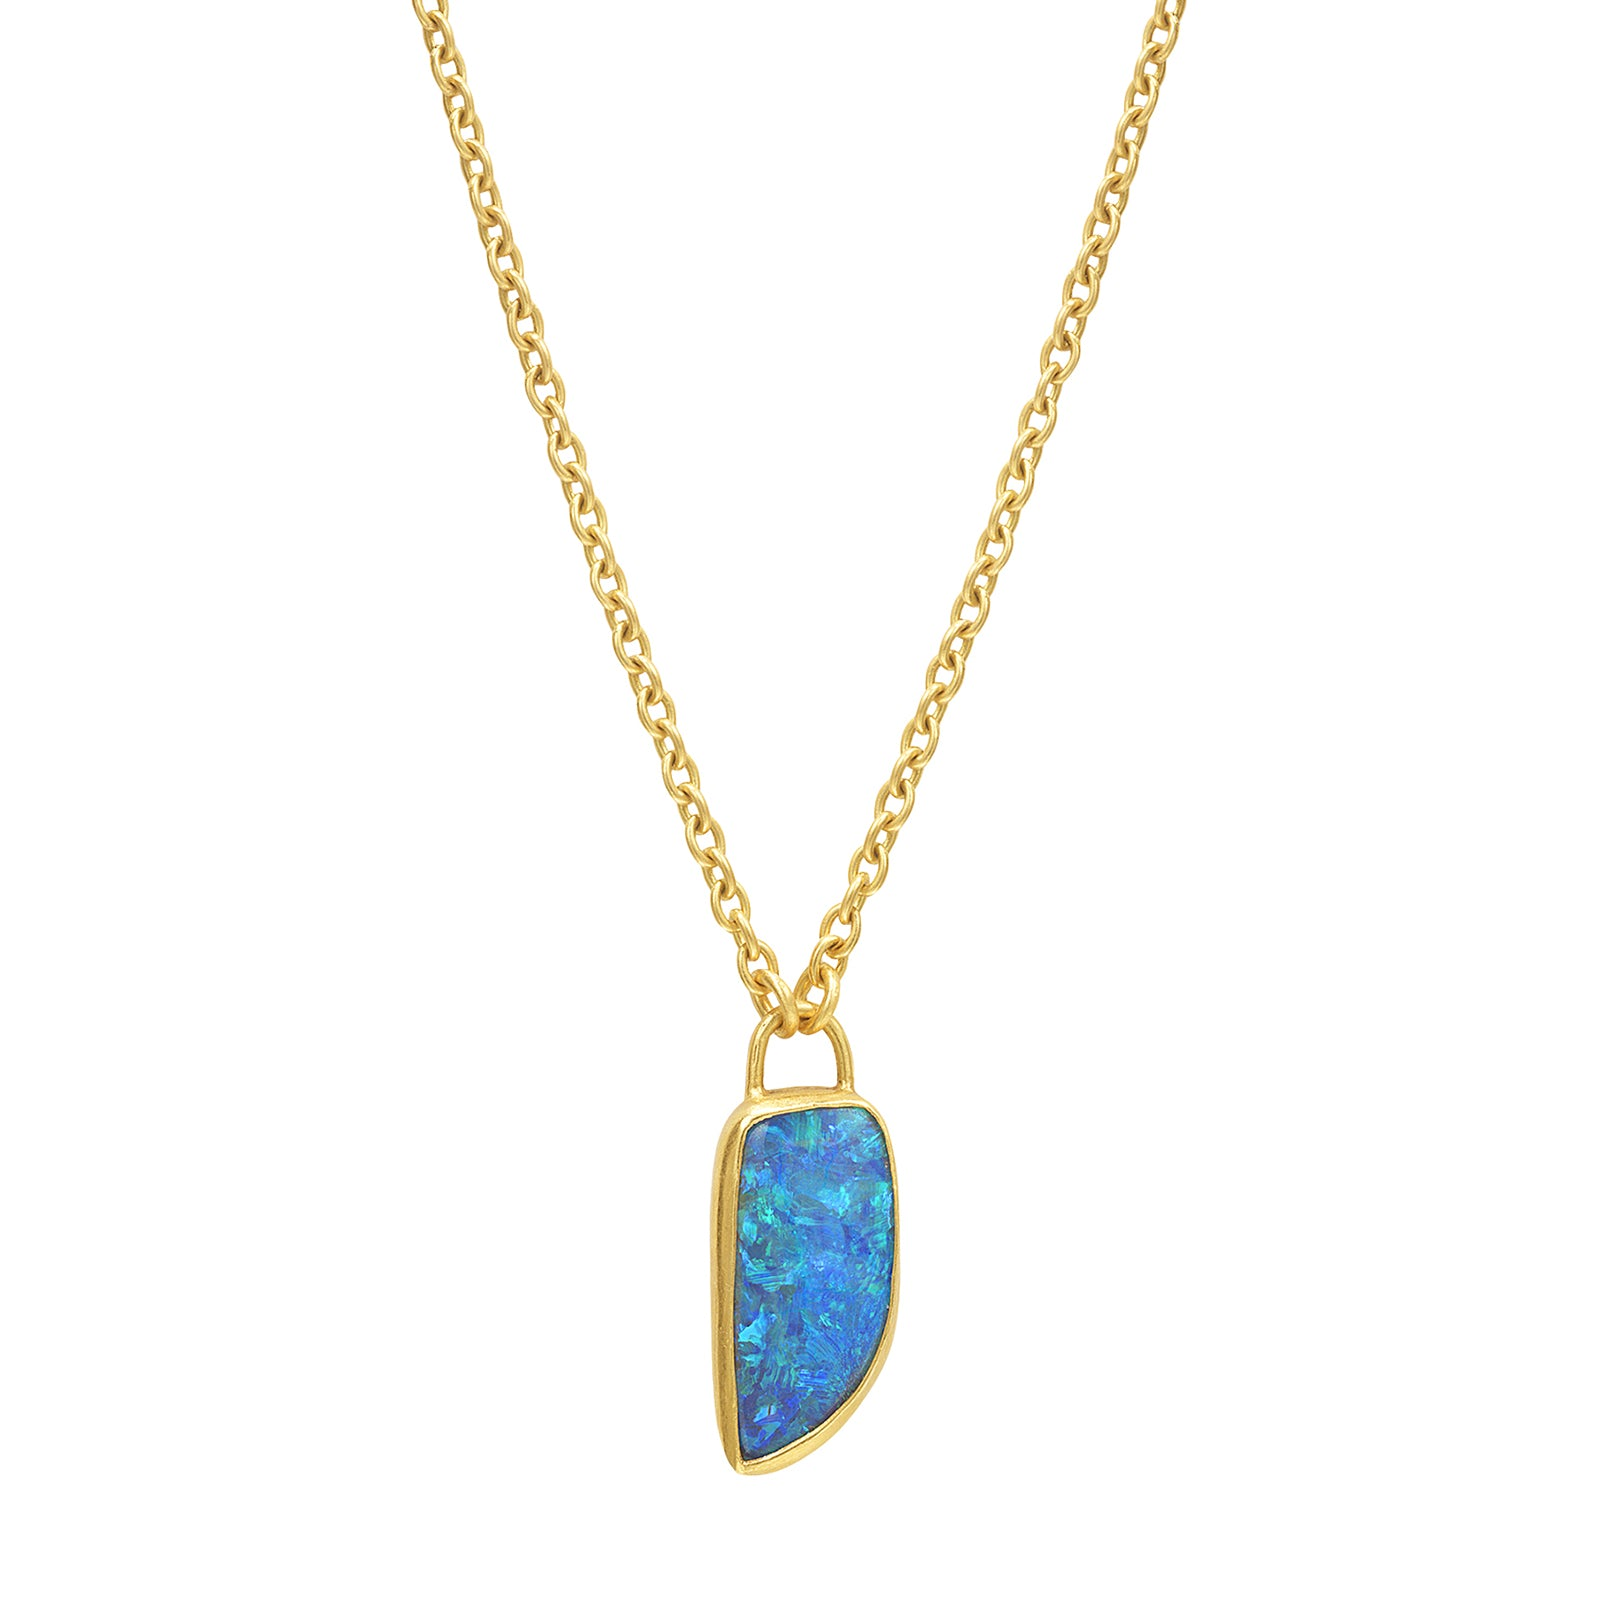 Eli Halili Pendant Necklace - Opal - Necklaces - Broken English Jewelry